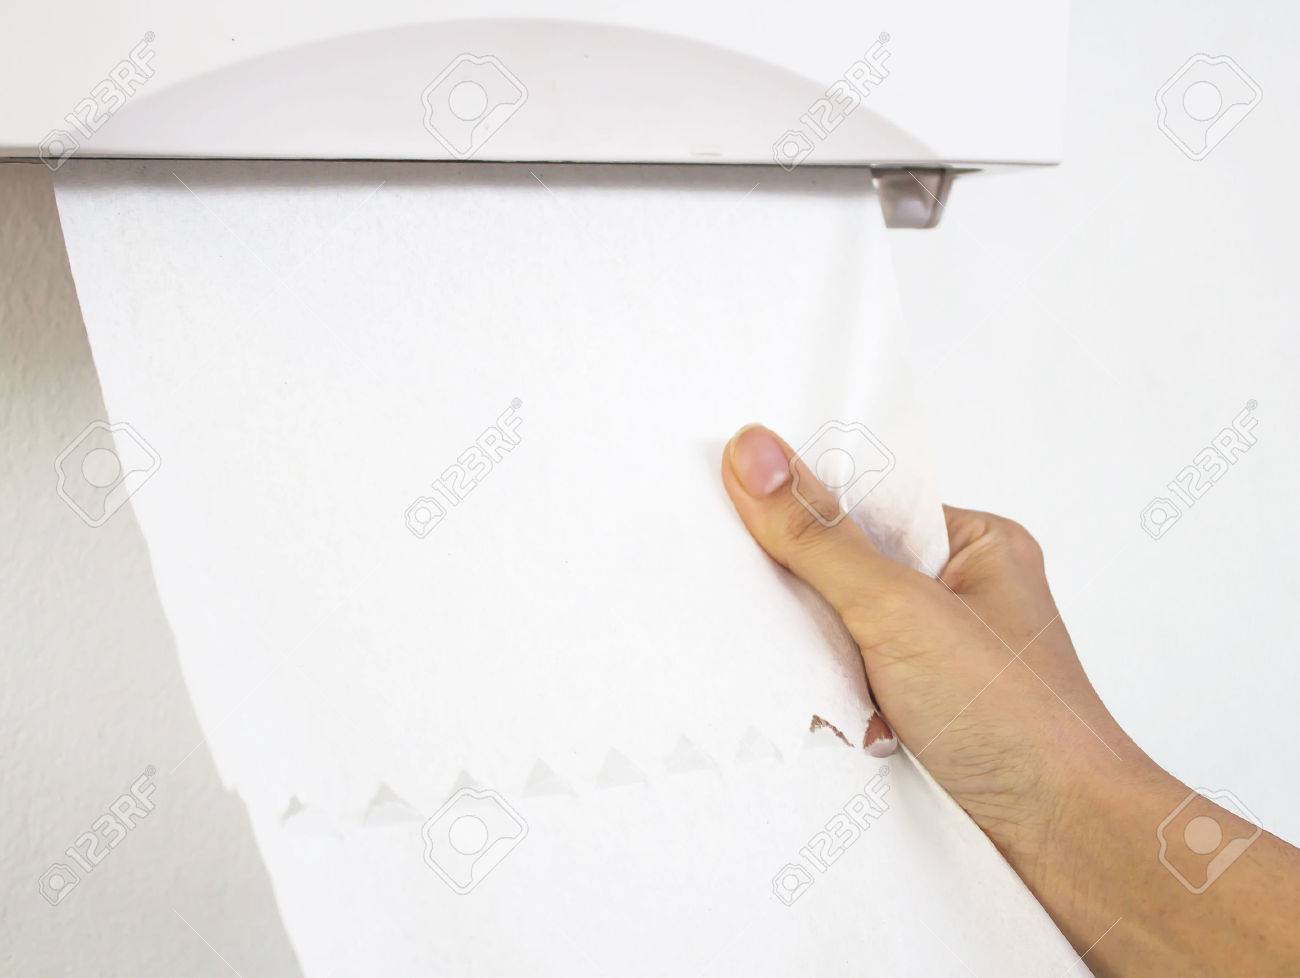 Disposable bathroom hand towels - Hand Woman Pull Tissues Paper Towel Dispenser On The Wall In The Bathroom Stock Photo